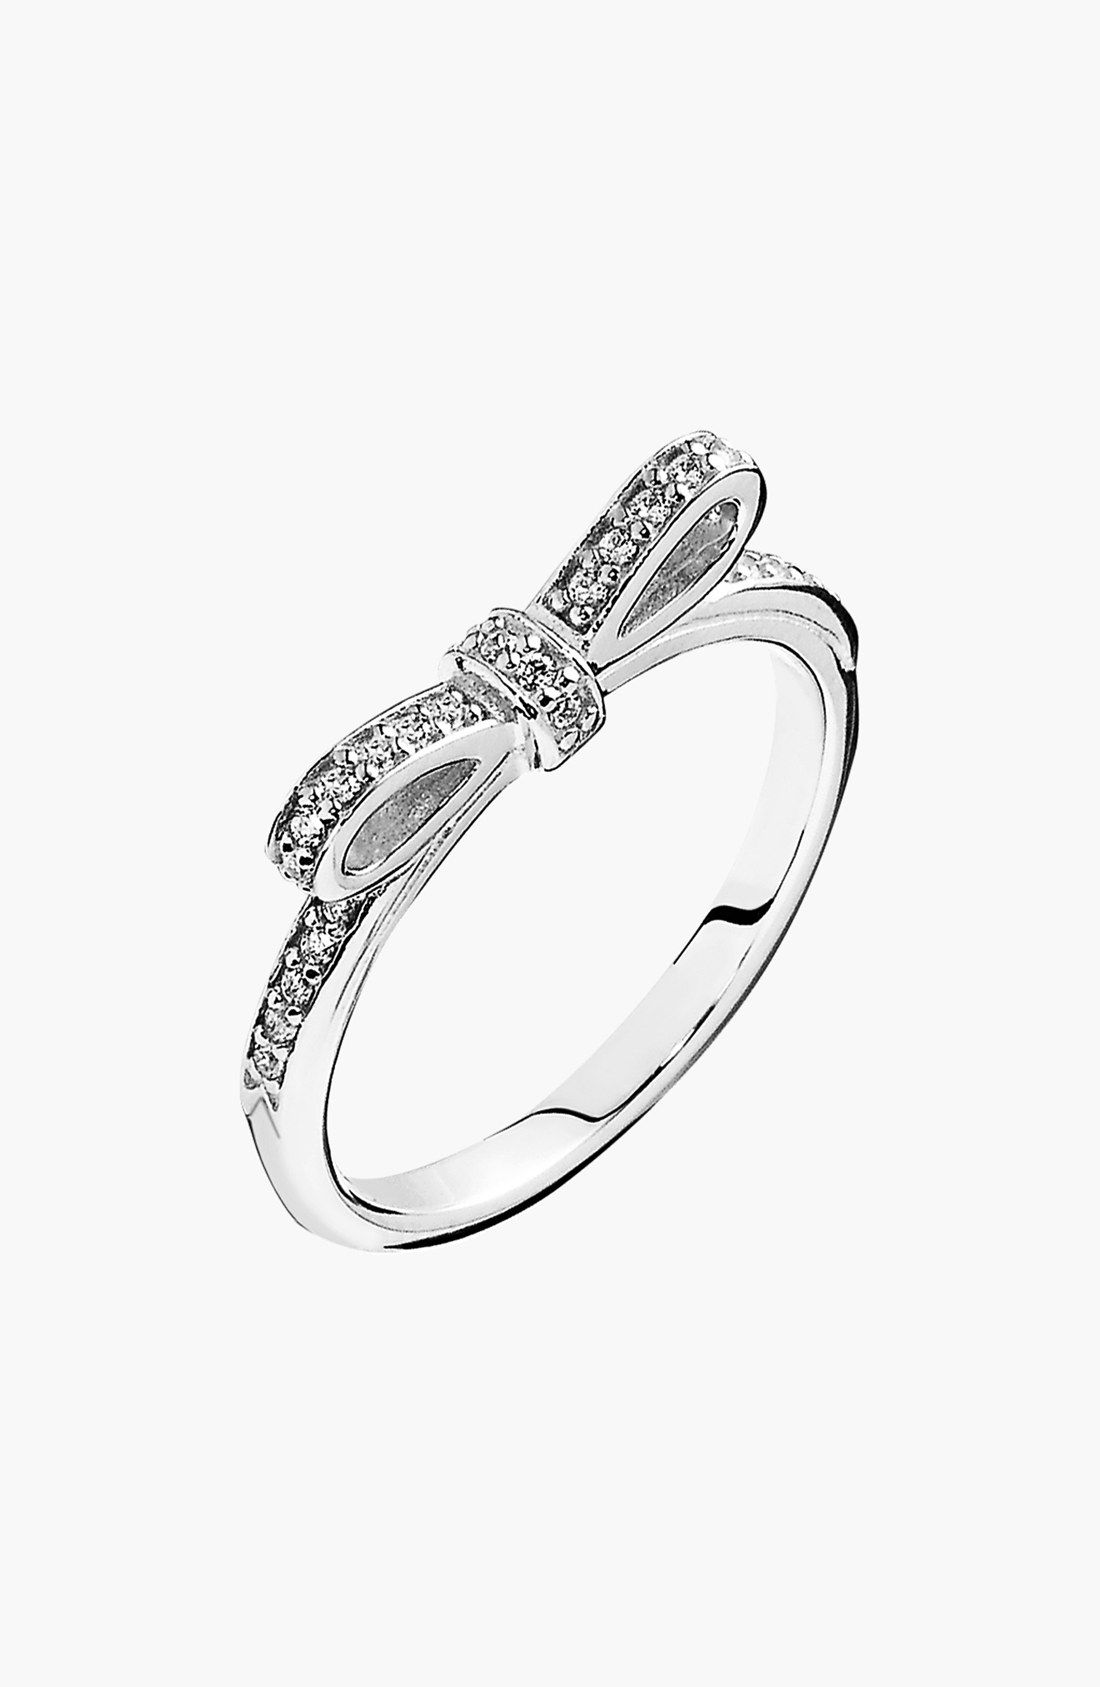 Must have accessories ring crushes and gift